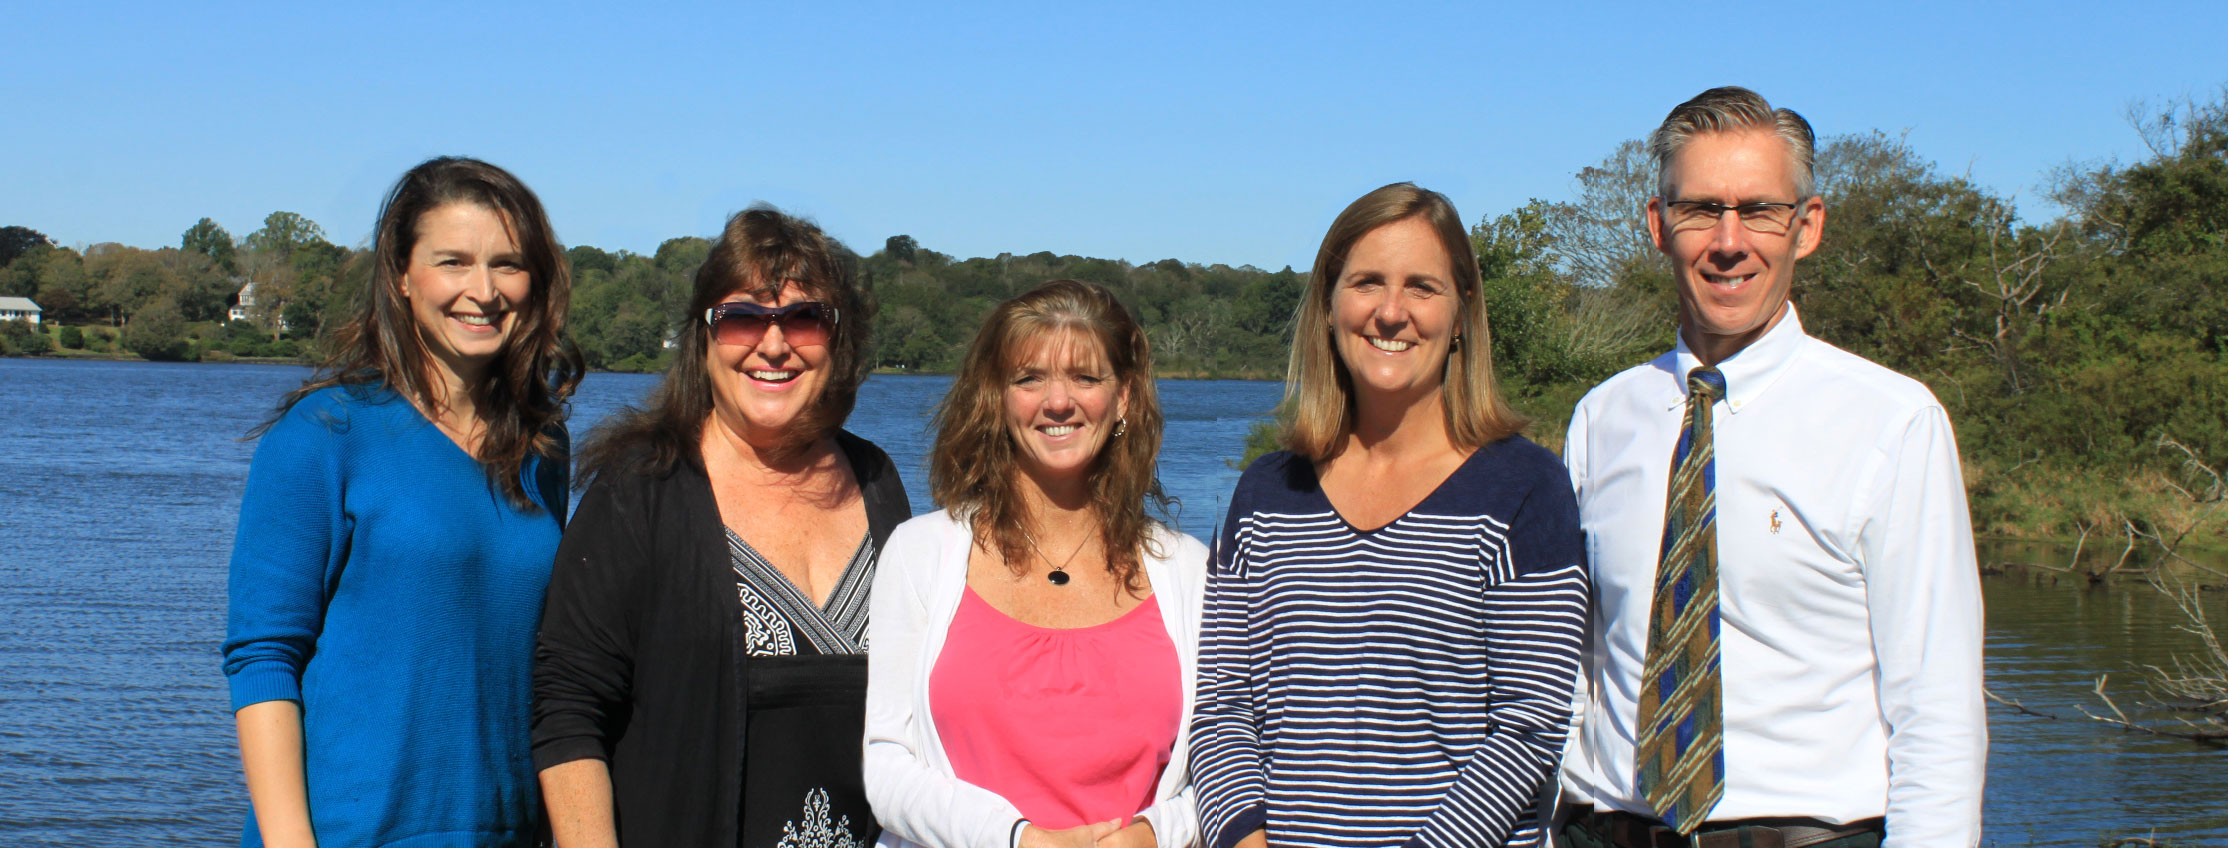 Easton Pond Chiropractic Team